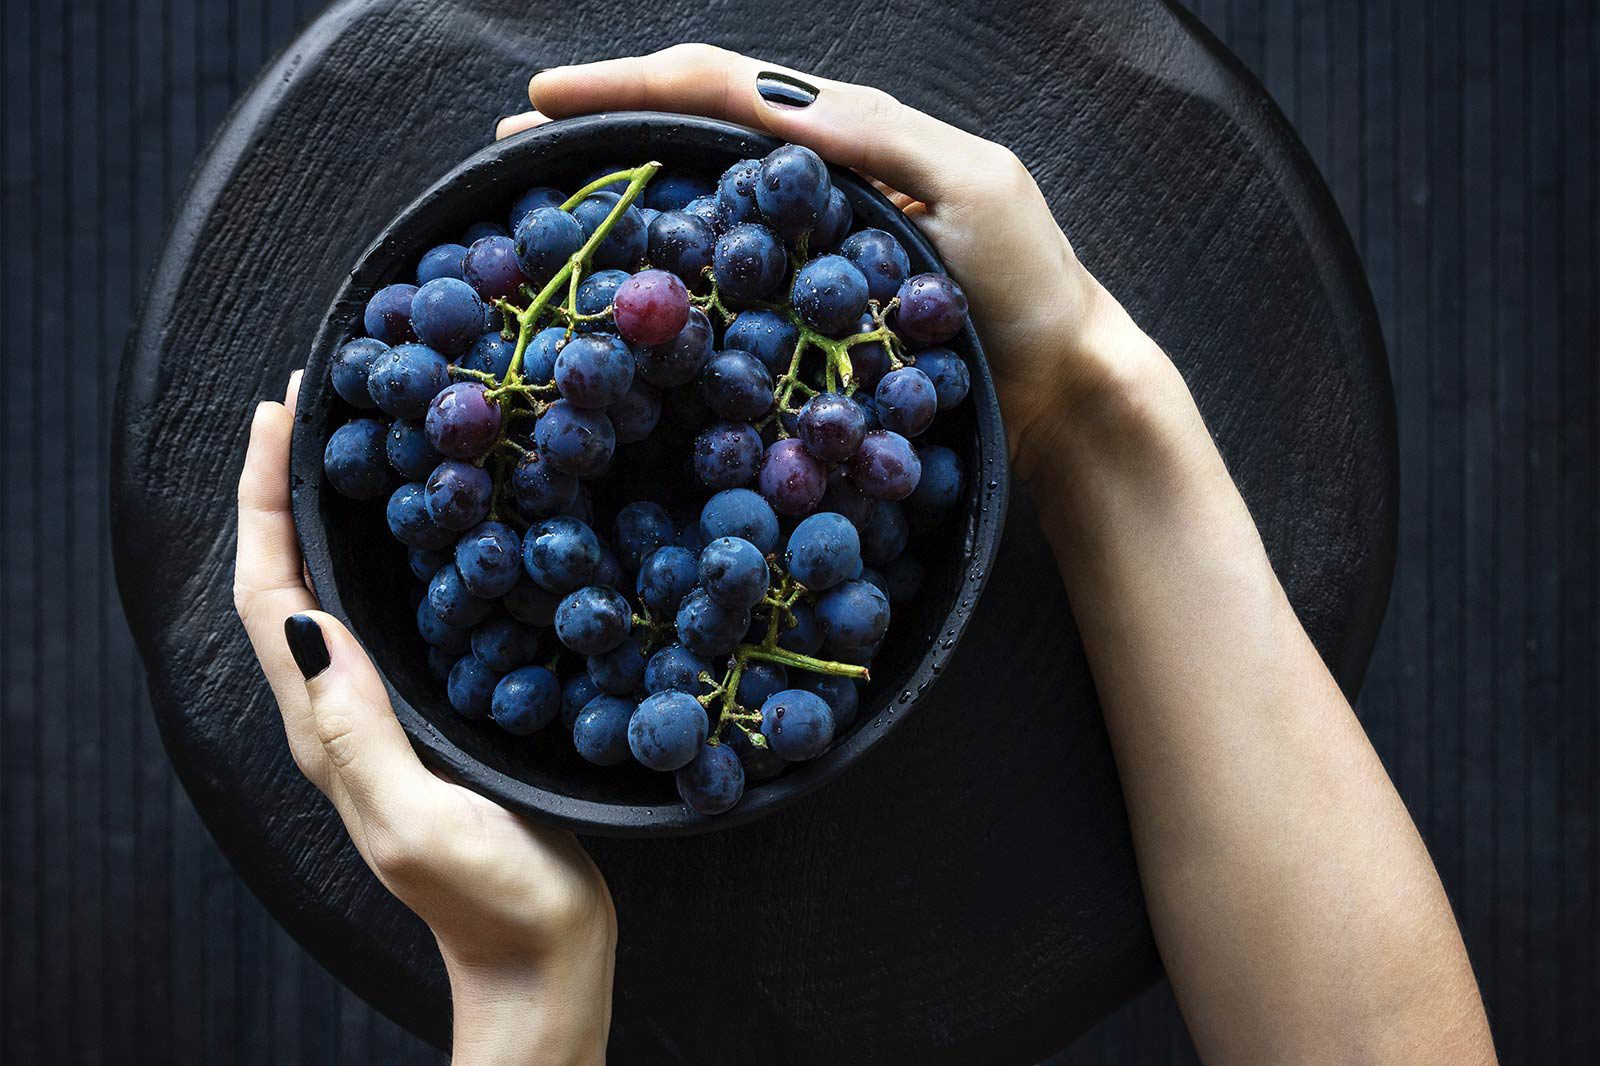 Person with black nail polish holding bowl of blue wine grapes.